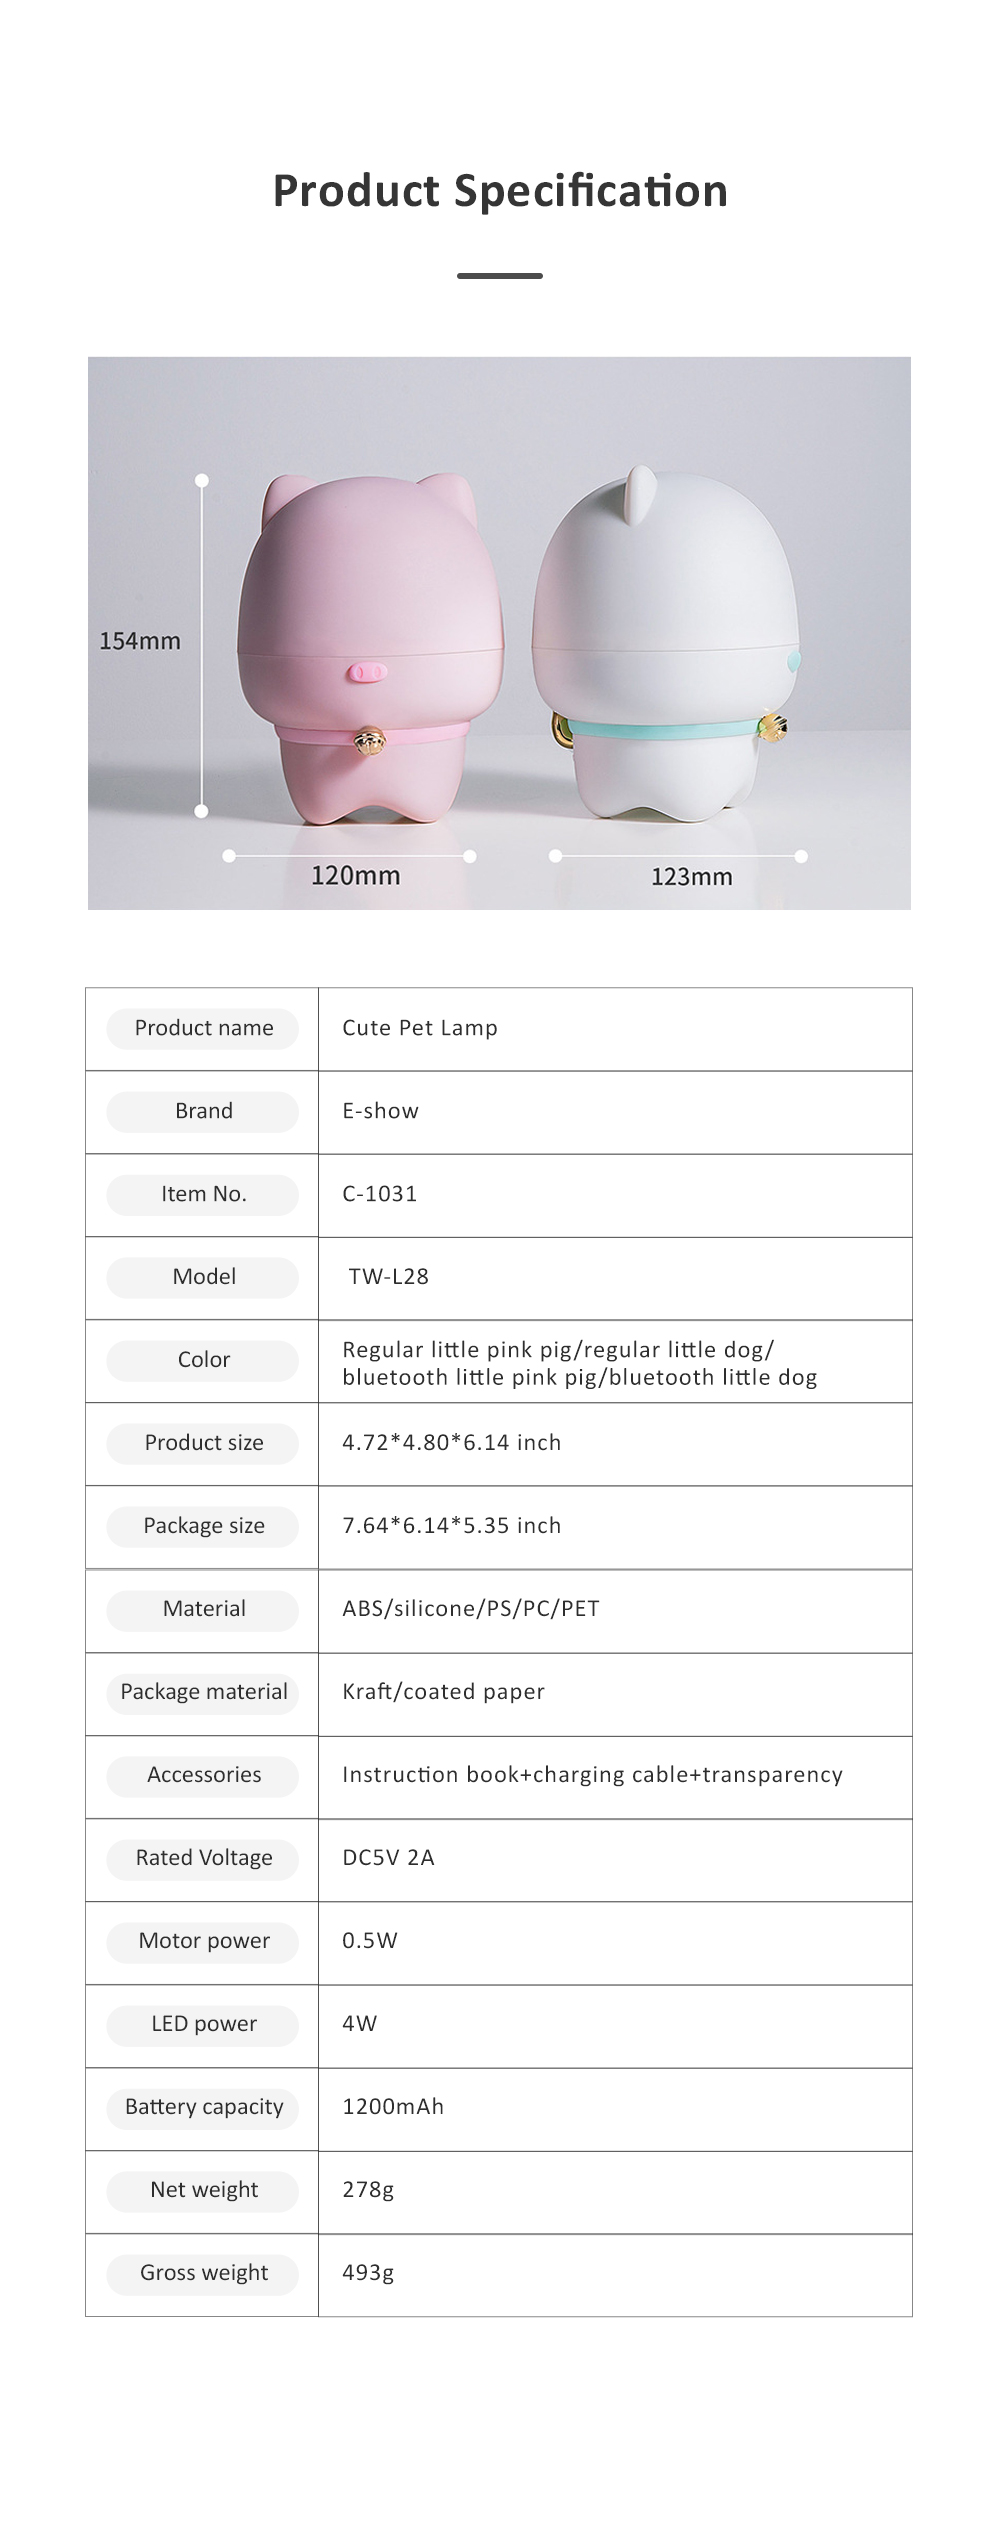 USB Rechargeable Romantic Pet Bluetooth Projection Lamp Rotation Night Lamp Speaker Box With Remote Control 6